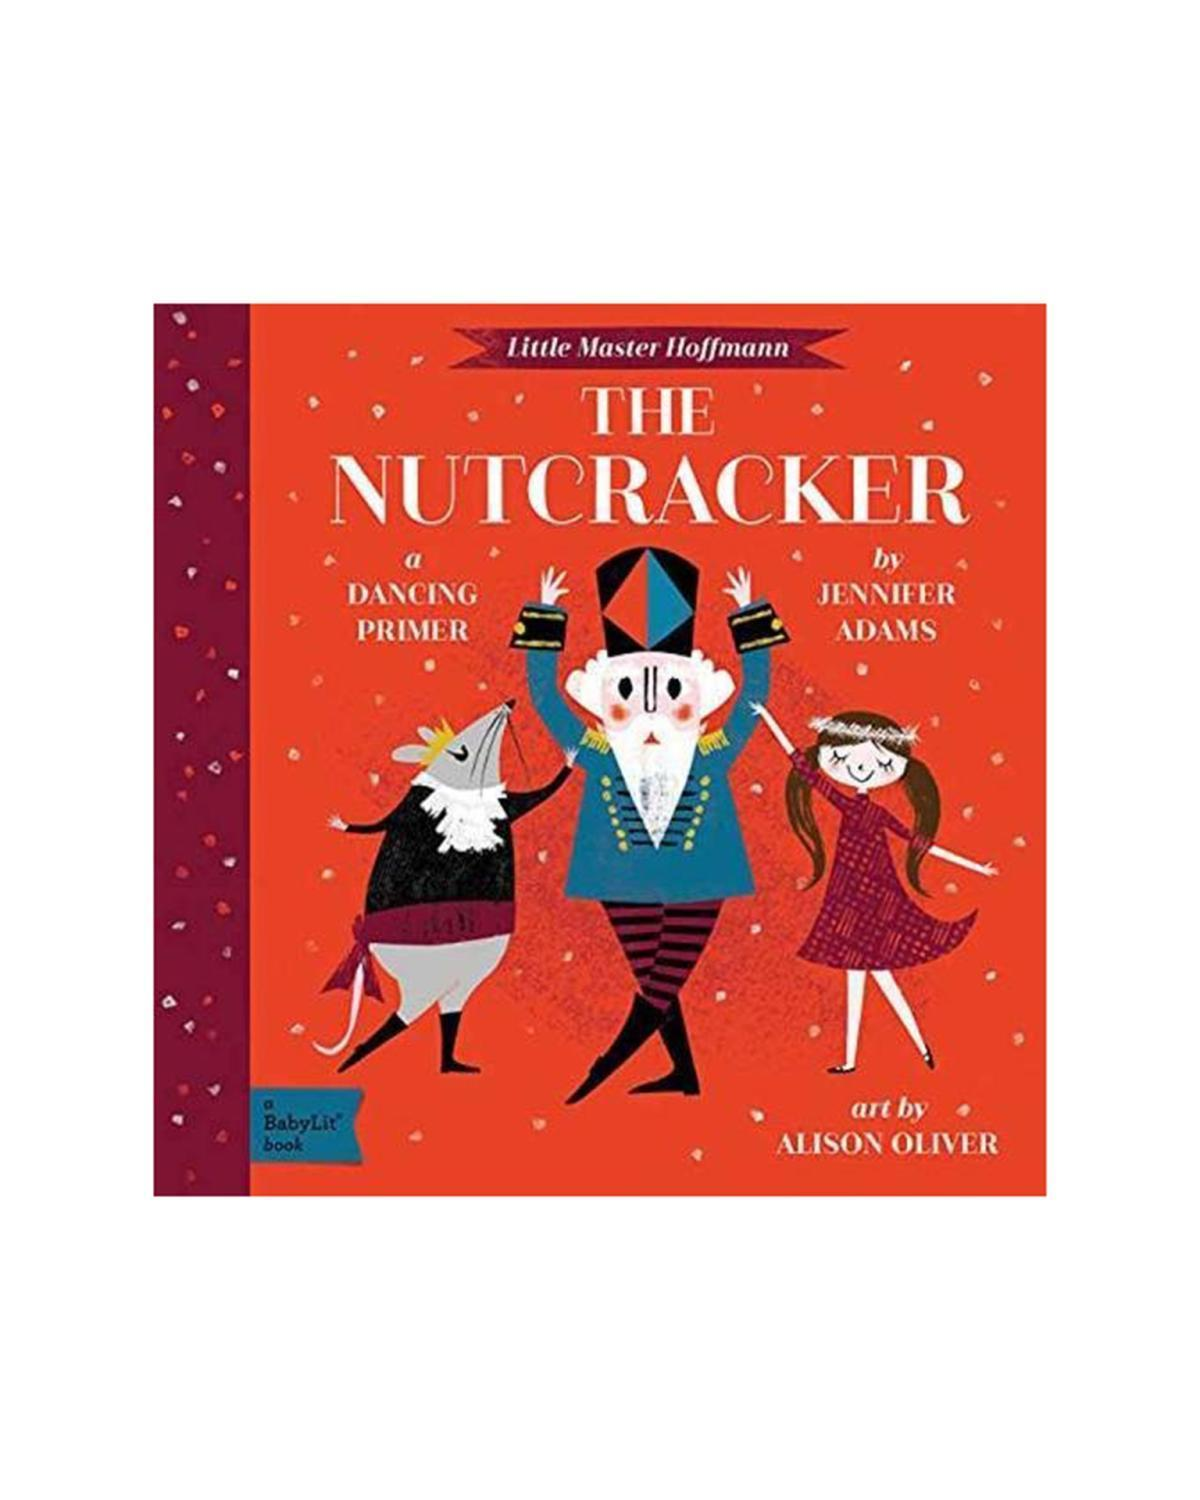 Little gibbs smith publisher play the nutcracker: a babyLit® dancing primer